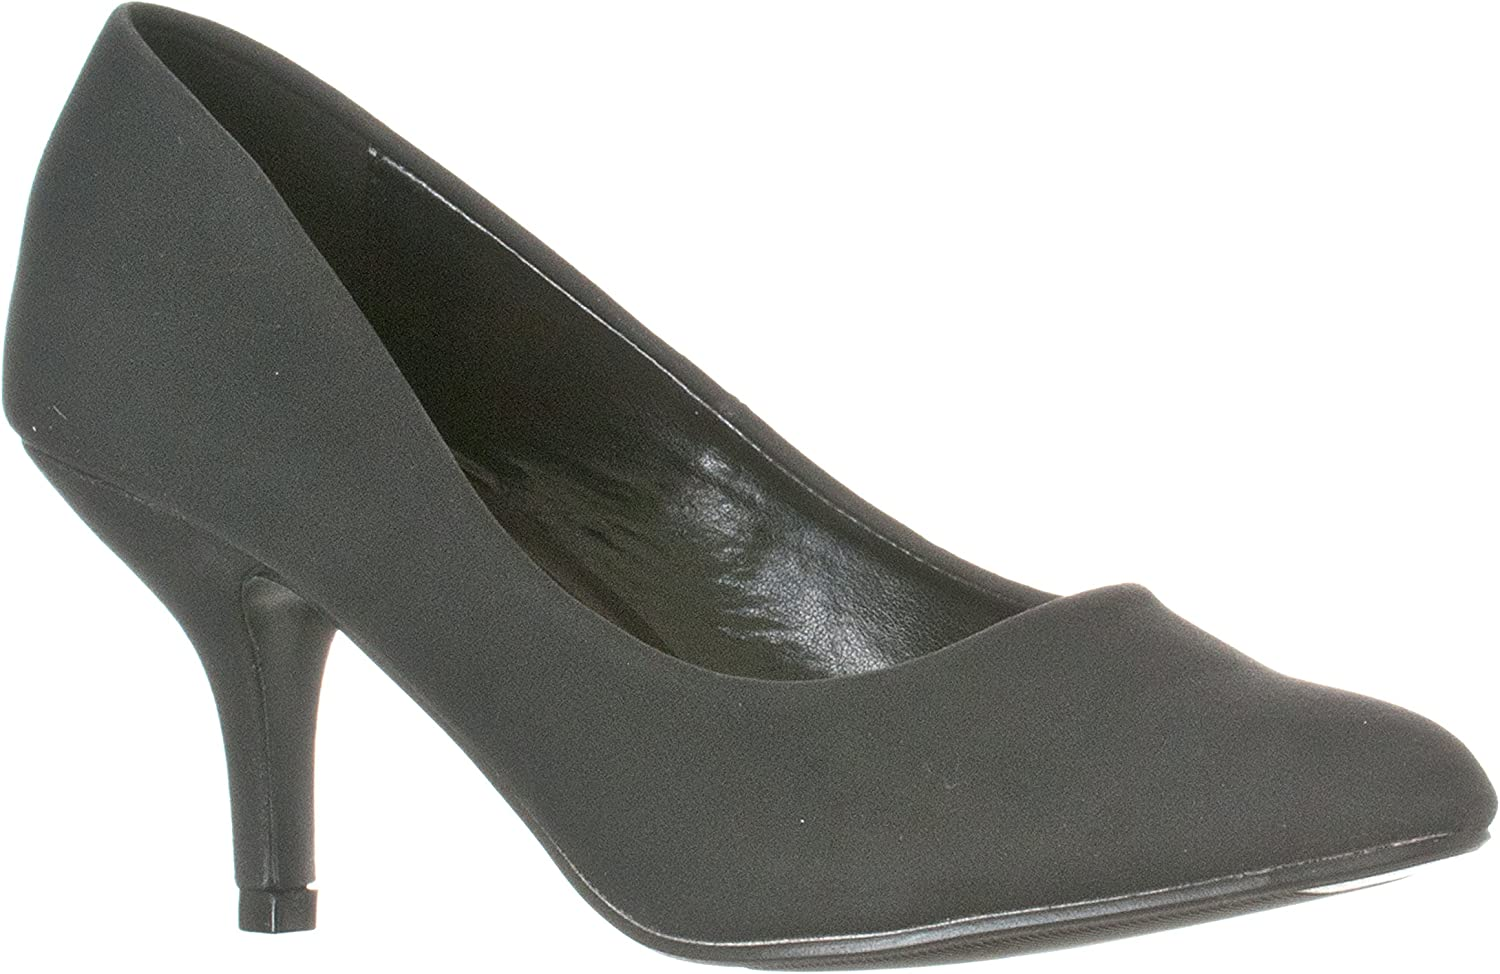 Lasonia Women's Fashion Low Heels